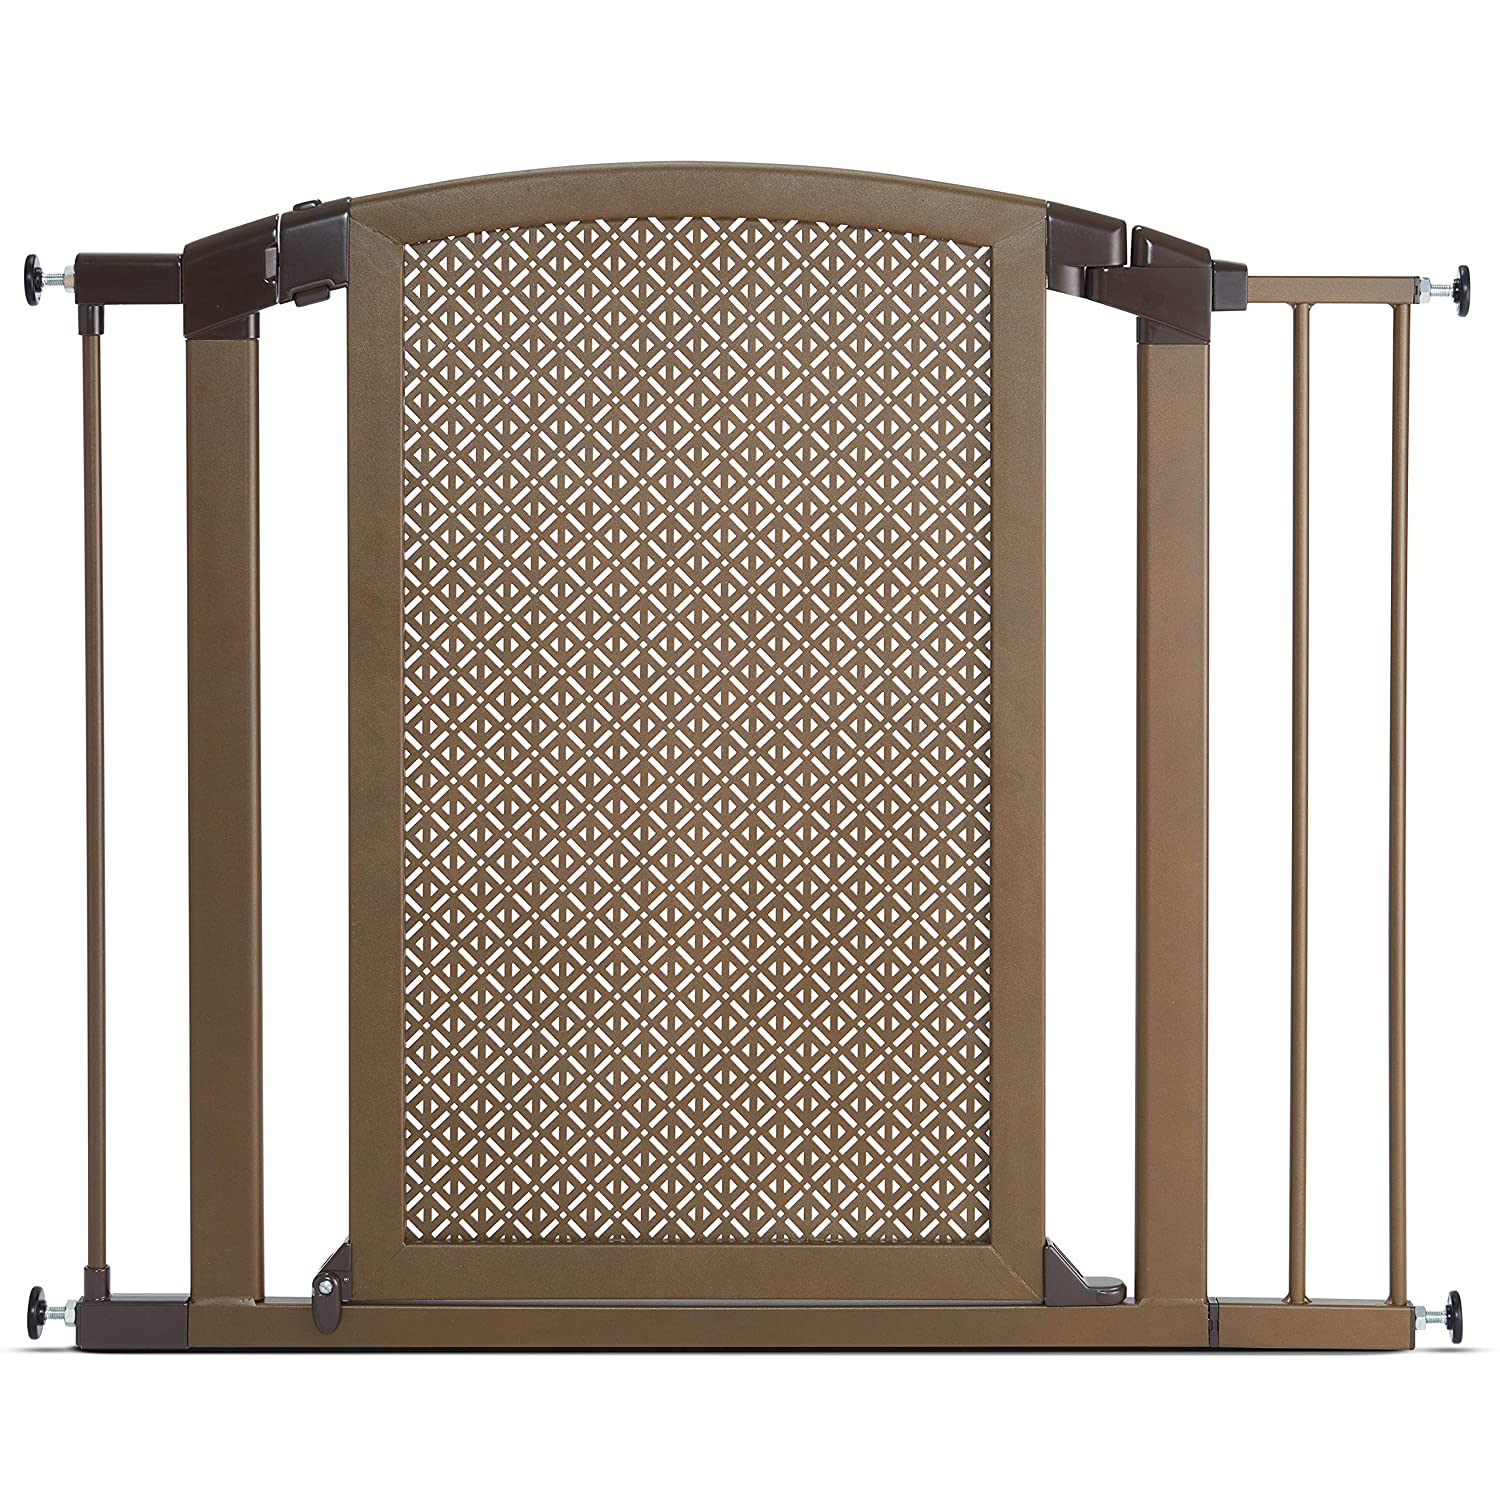 Munchkin Decorative Metal Baby Gate Extension Compatible with Gate Bronze MKSA0658-011 2.75 2.75 31175